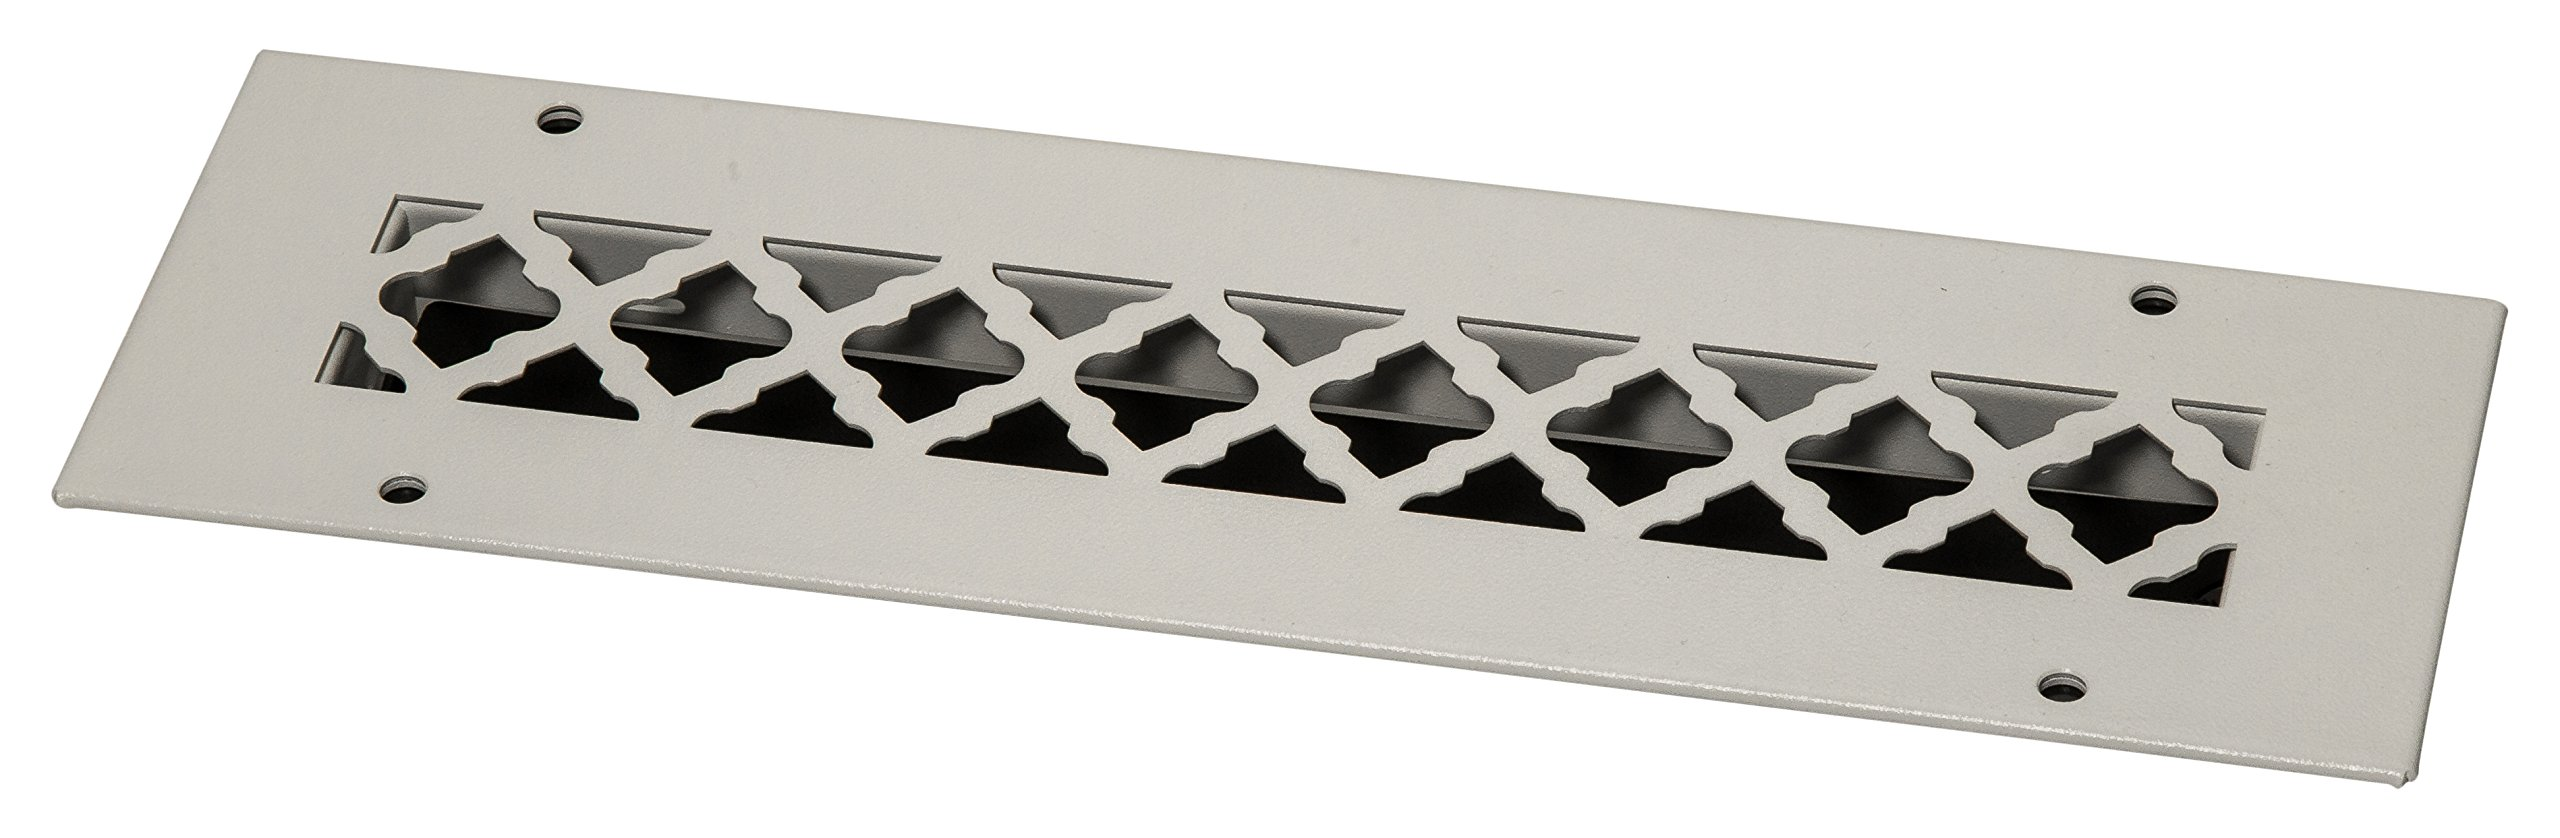 SteelCrest BTU12X2.25SWHH Bronze Series Designer Wall/Ceiling Vent Cover, with Air-Volume Damper, and mounting Screws, White